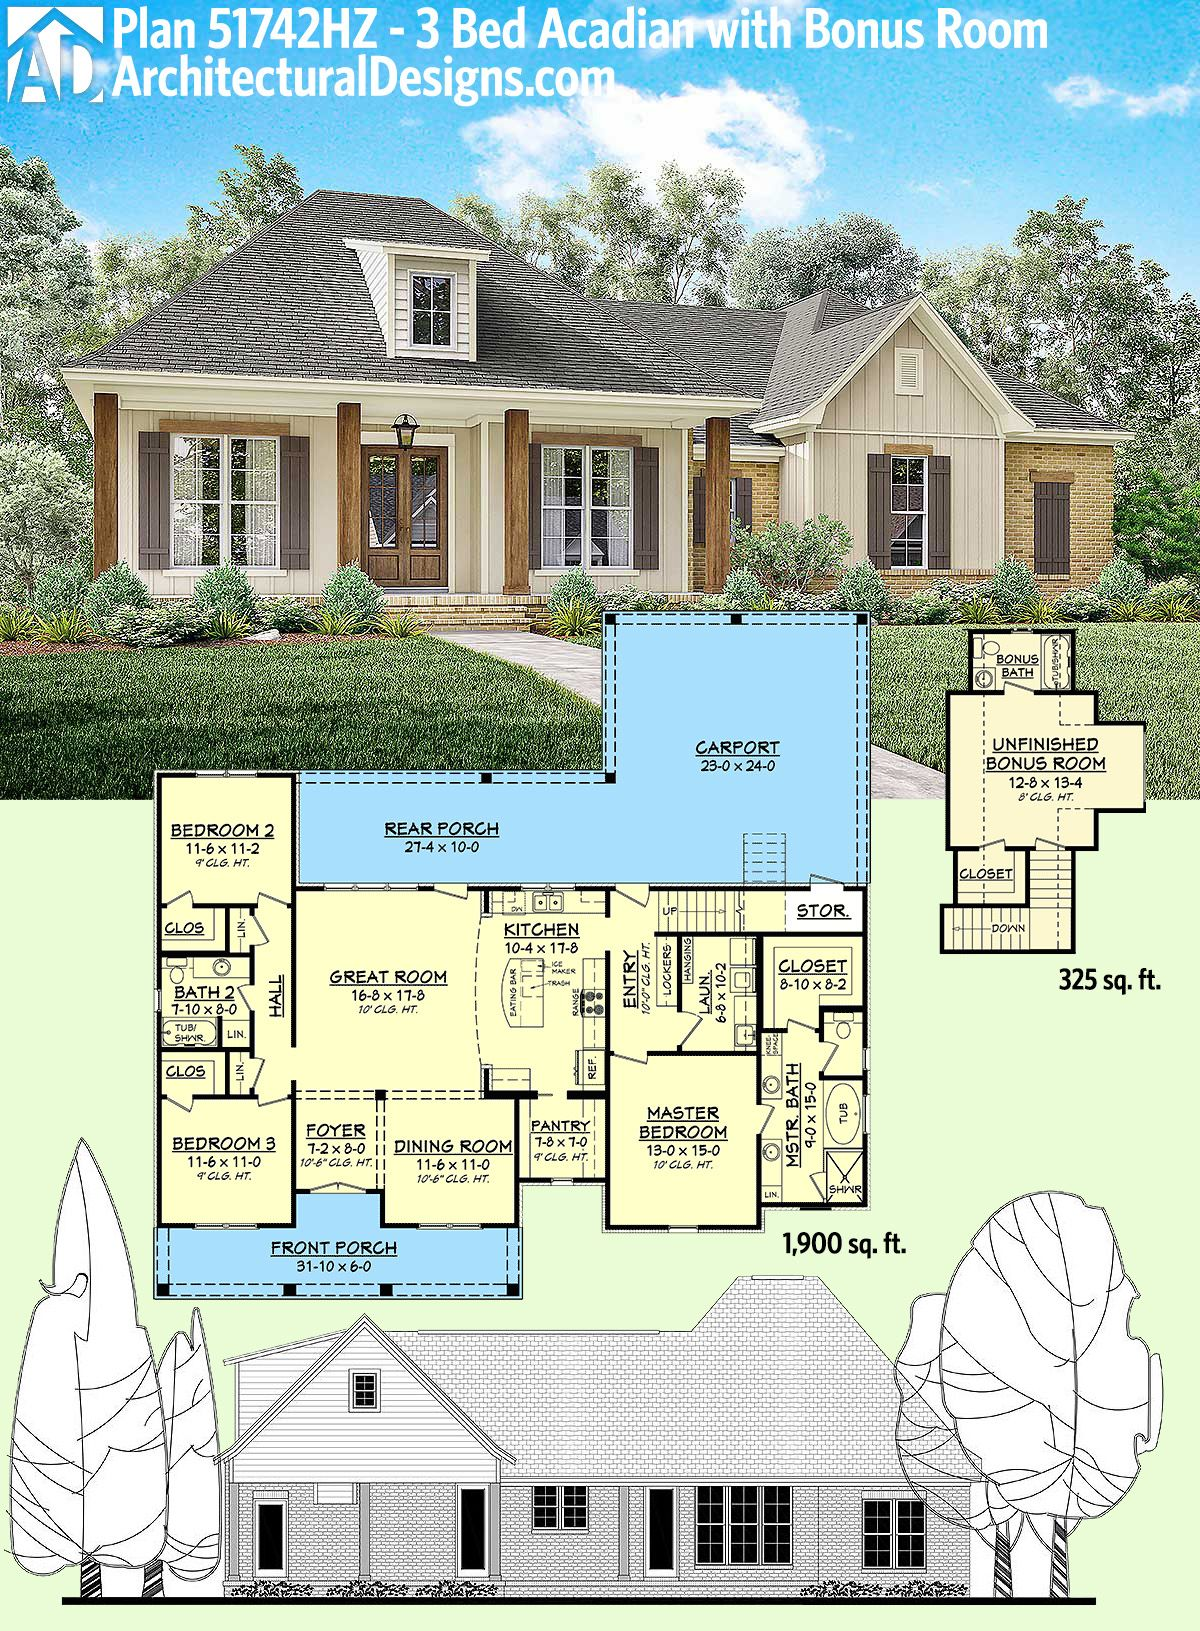 Architectural Designs Acadian House Plan 51742HZ Gives You 1,900 Square  Feet On The Main Floor And Part 84